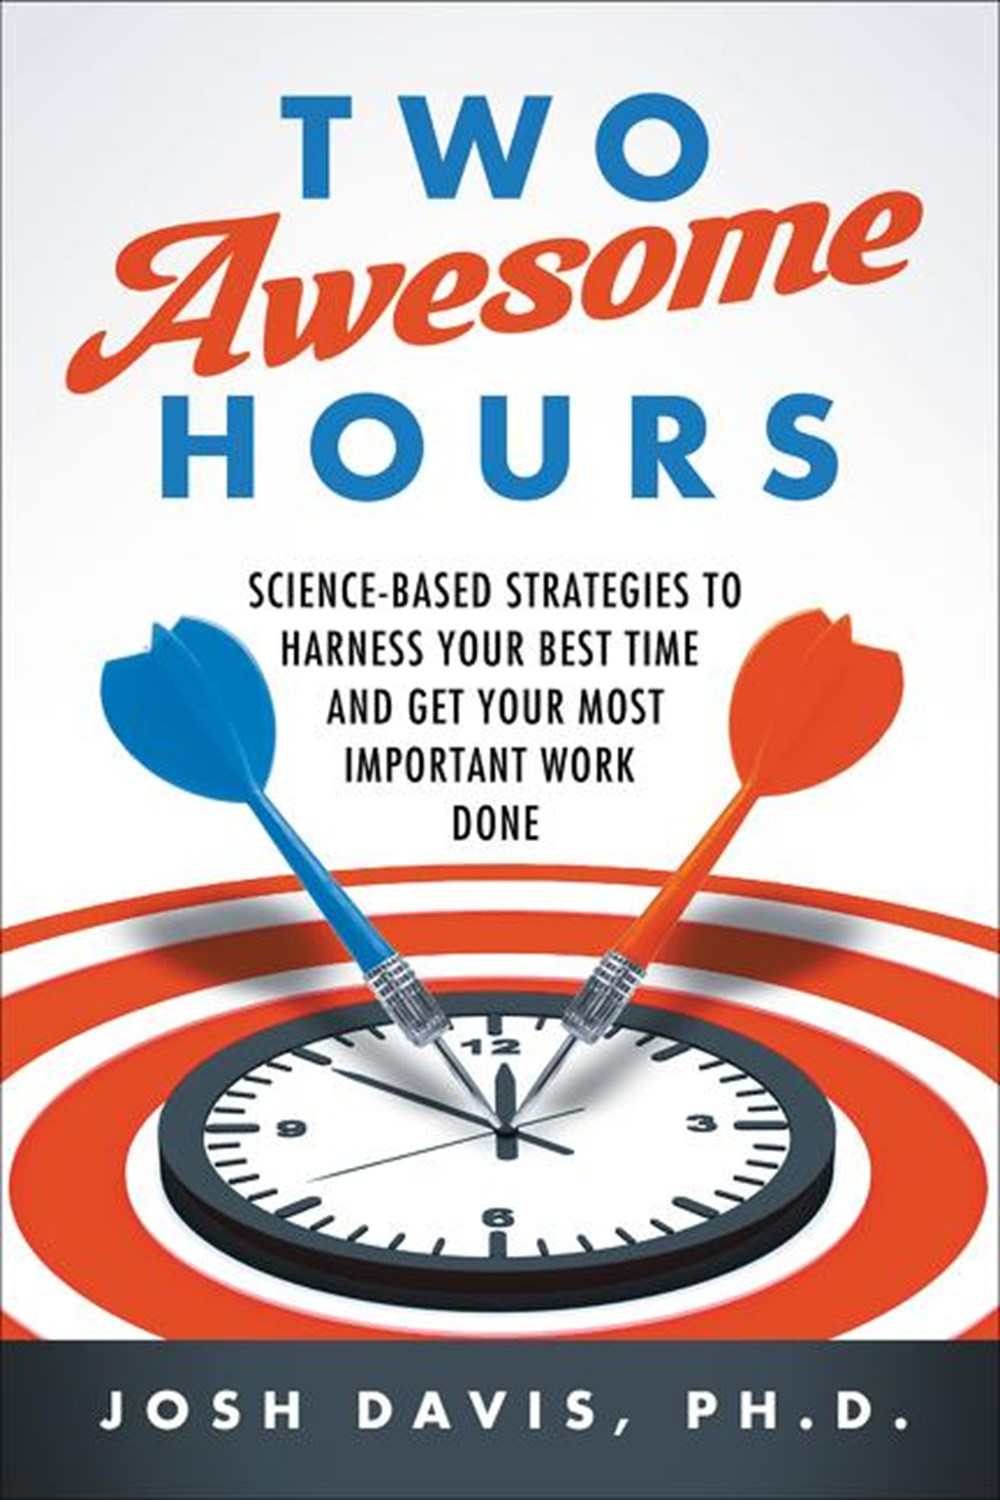 Two Awesome Hours Science-Based Strategies to Harness Your Best Time and Get Your Most Important Wor